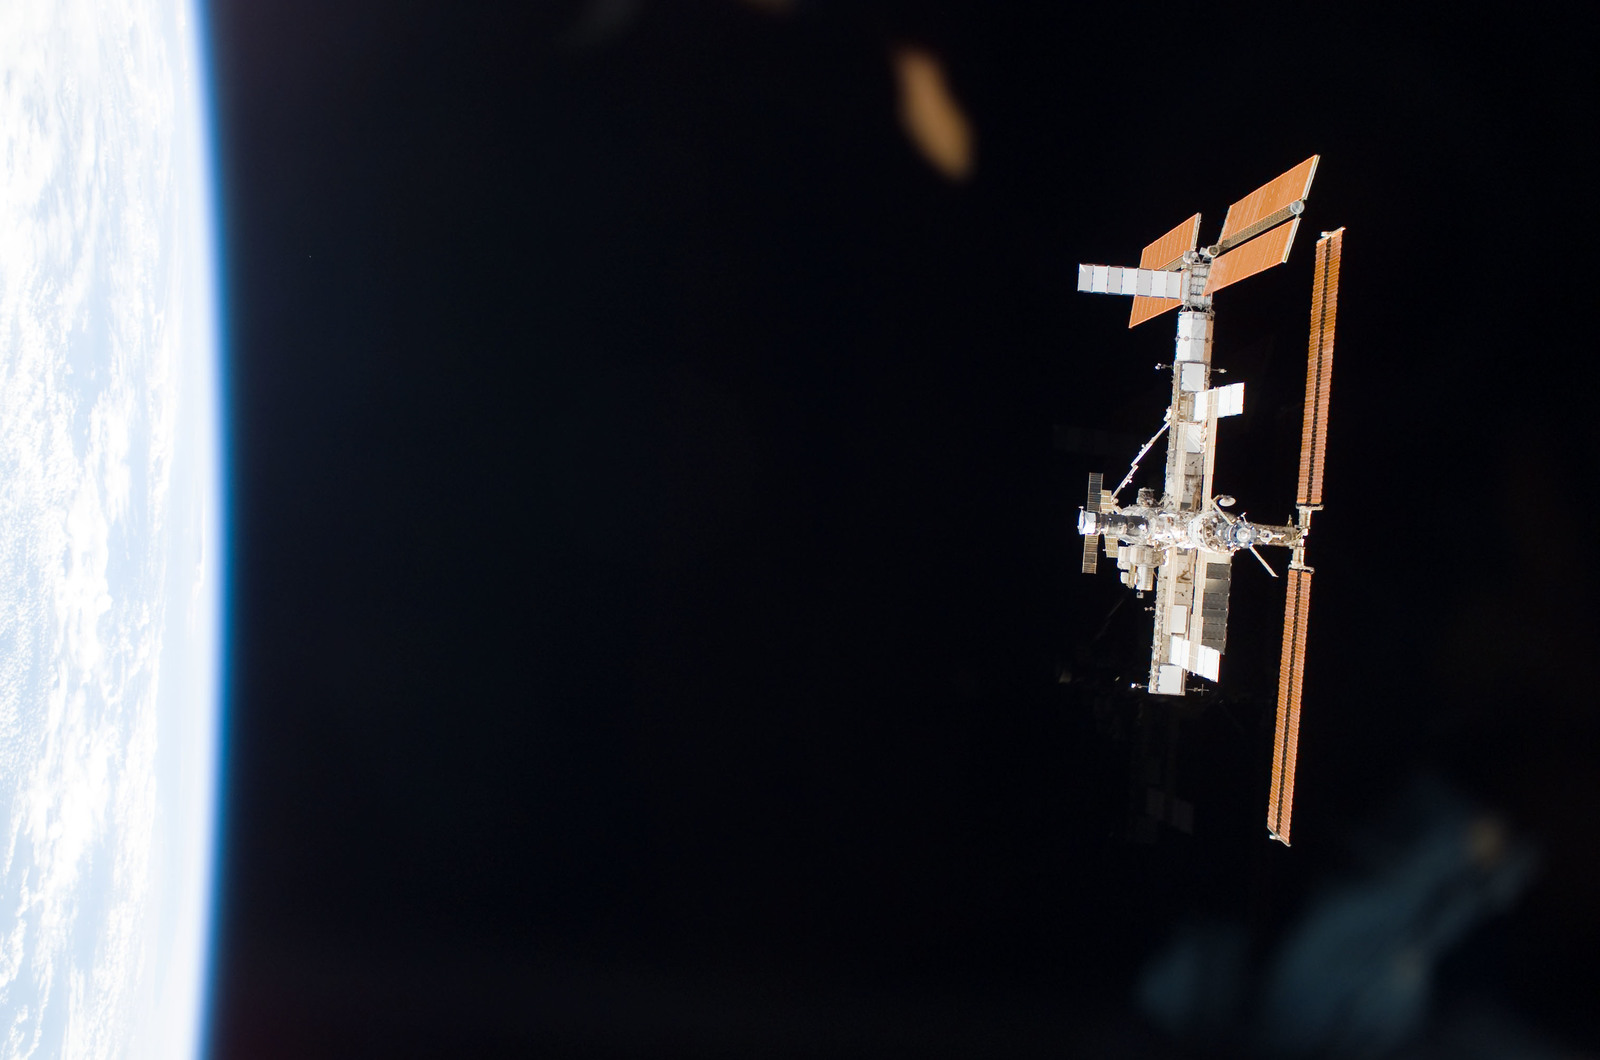 S115E06706 - STS-115 - Overall exterior view of the ISS during undocking and Flyaround Operations for STS-115 Space Shuttle Atlantis